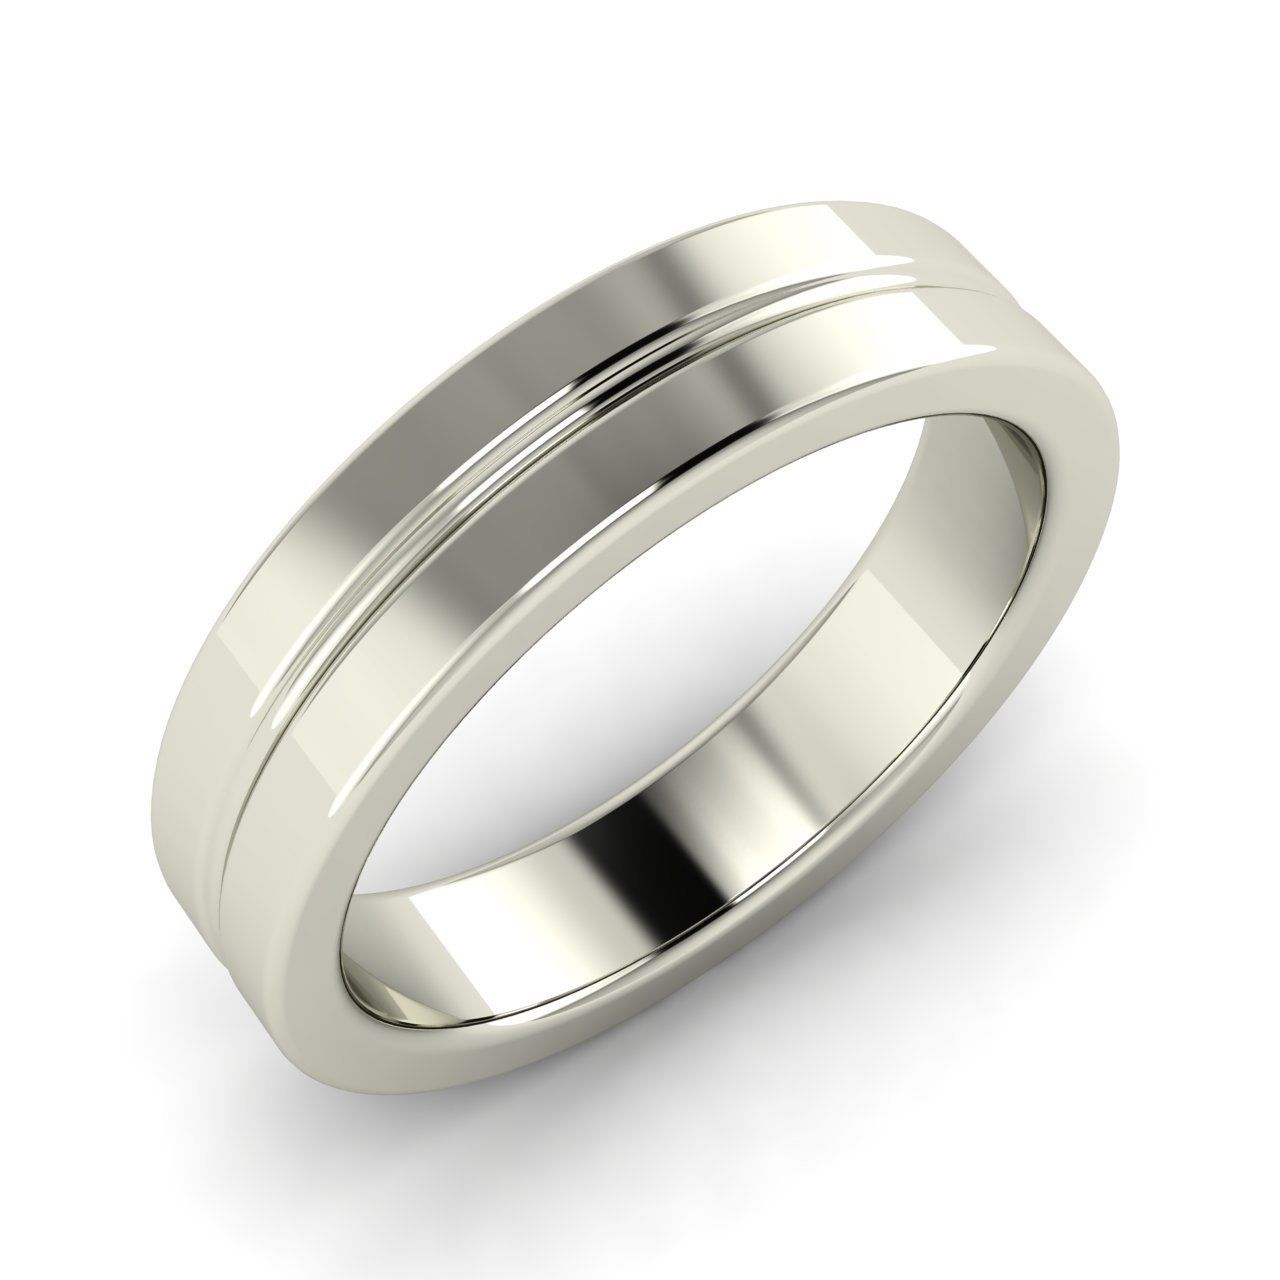 Mens ring wedding band in 14k solid white gold by